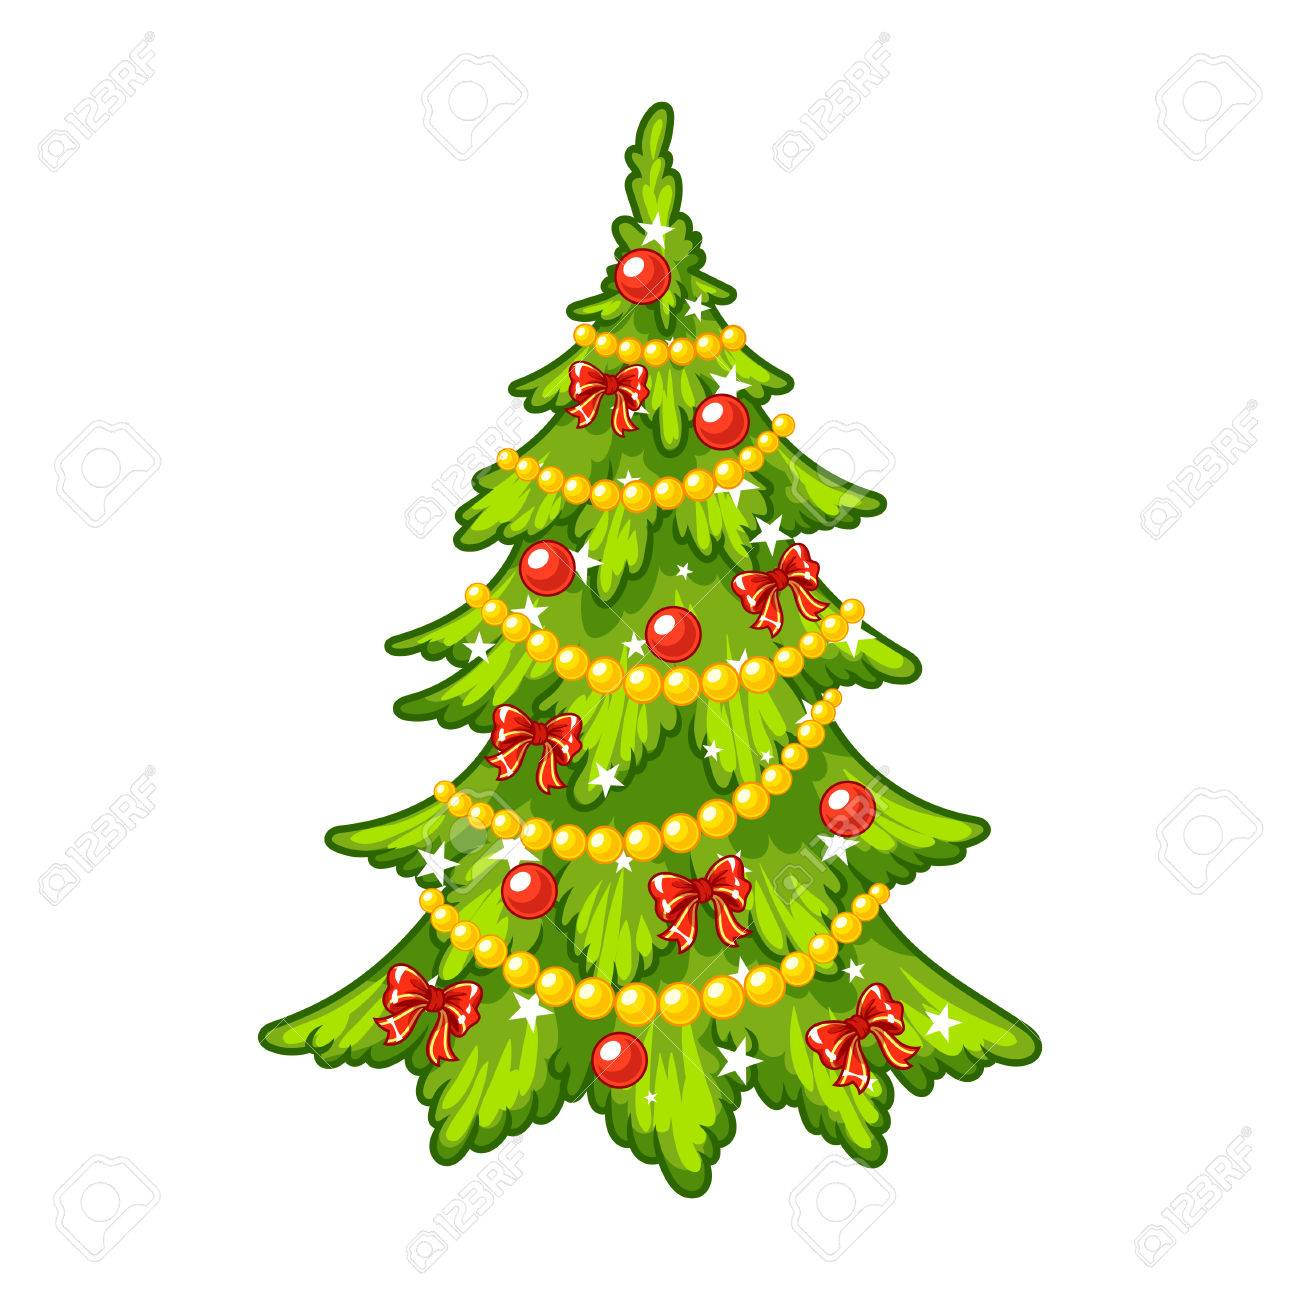 Christmas Trees Background Clipart.Decorated Christmas Tree Clip Art Illustration On A White Background